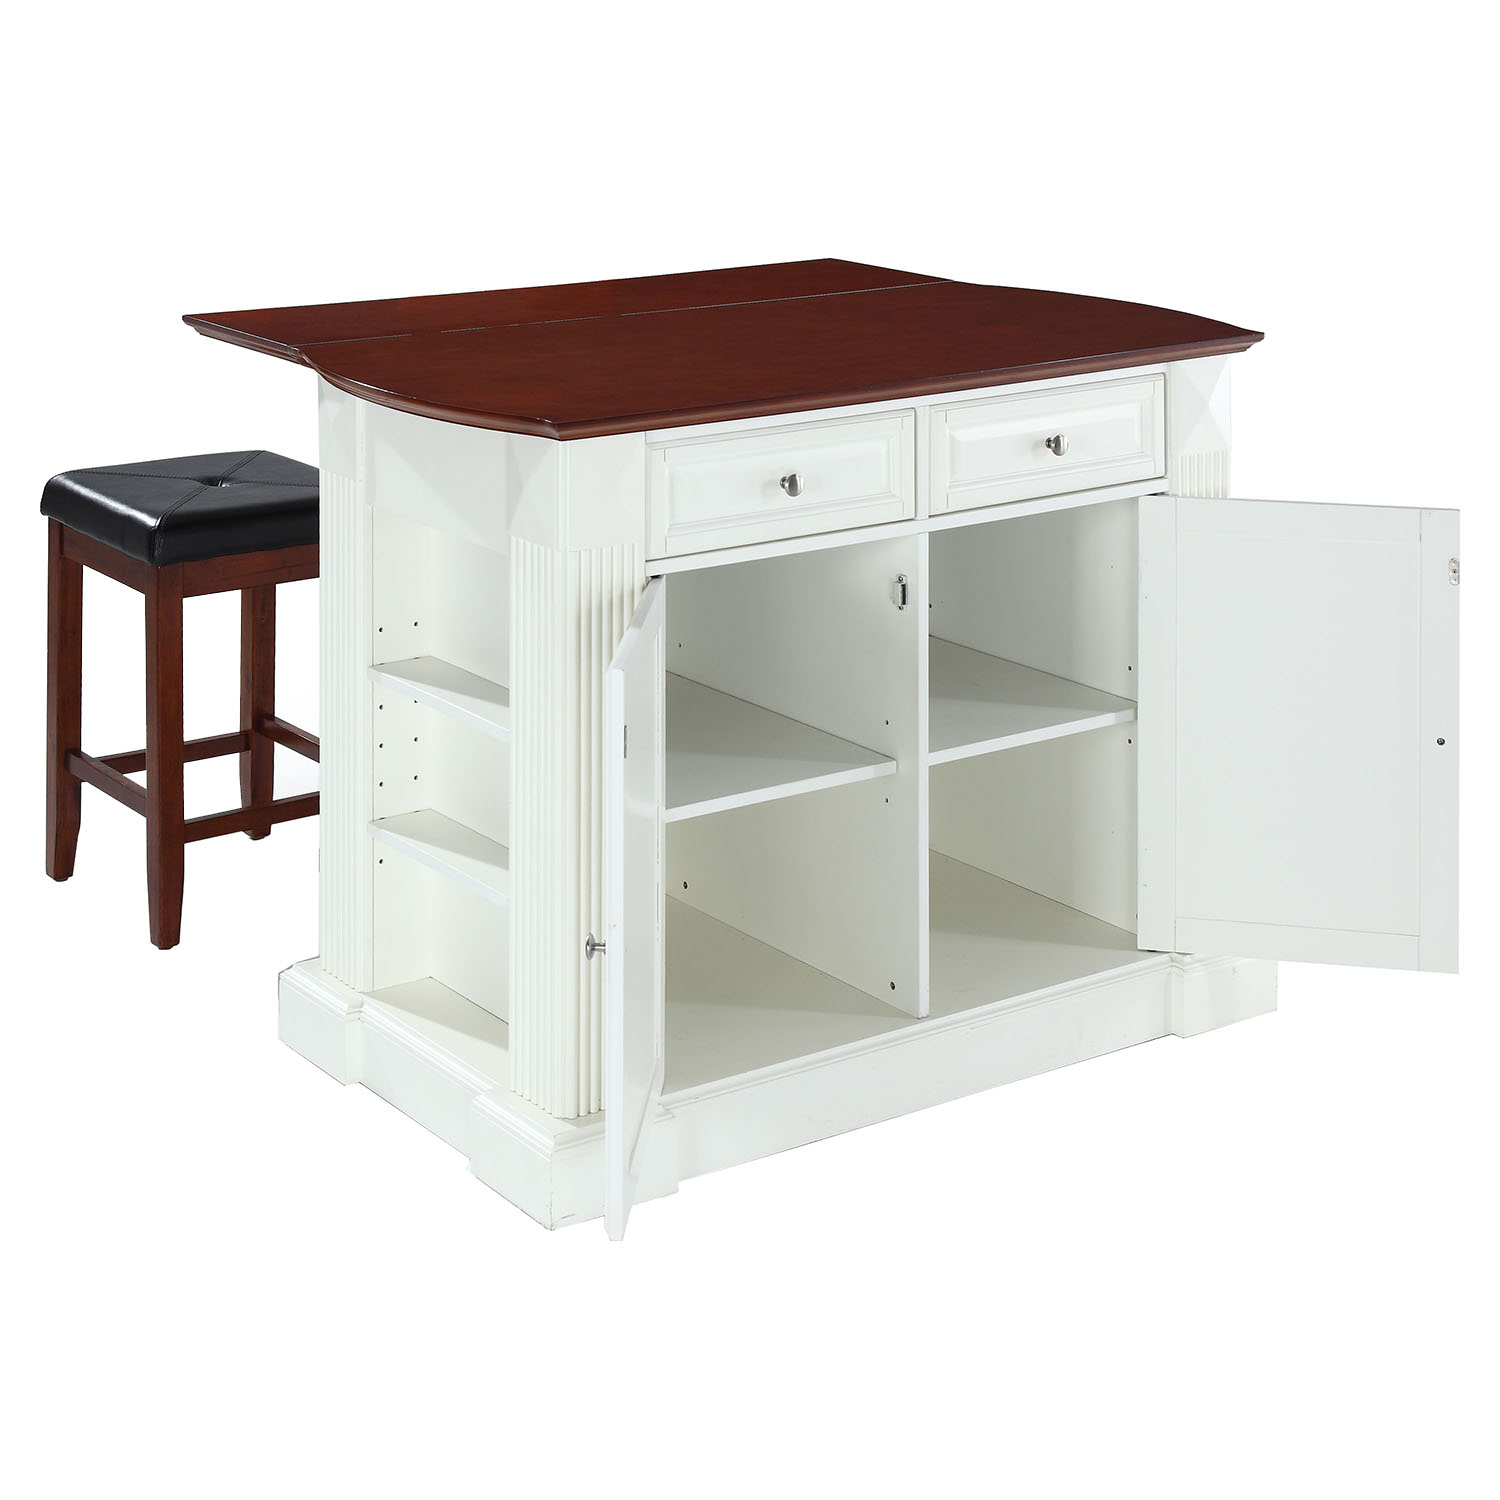 kitchen islands with drop leaf drop leaf kitchen island in white with 24 quot cherry square seat stools dcg stores 4918